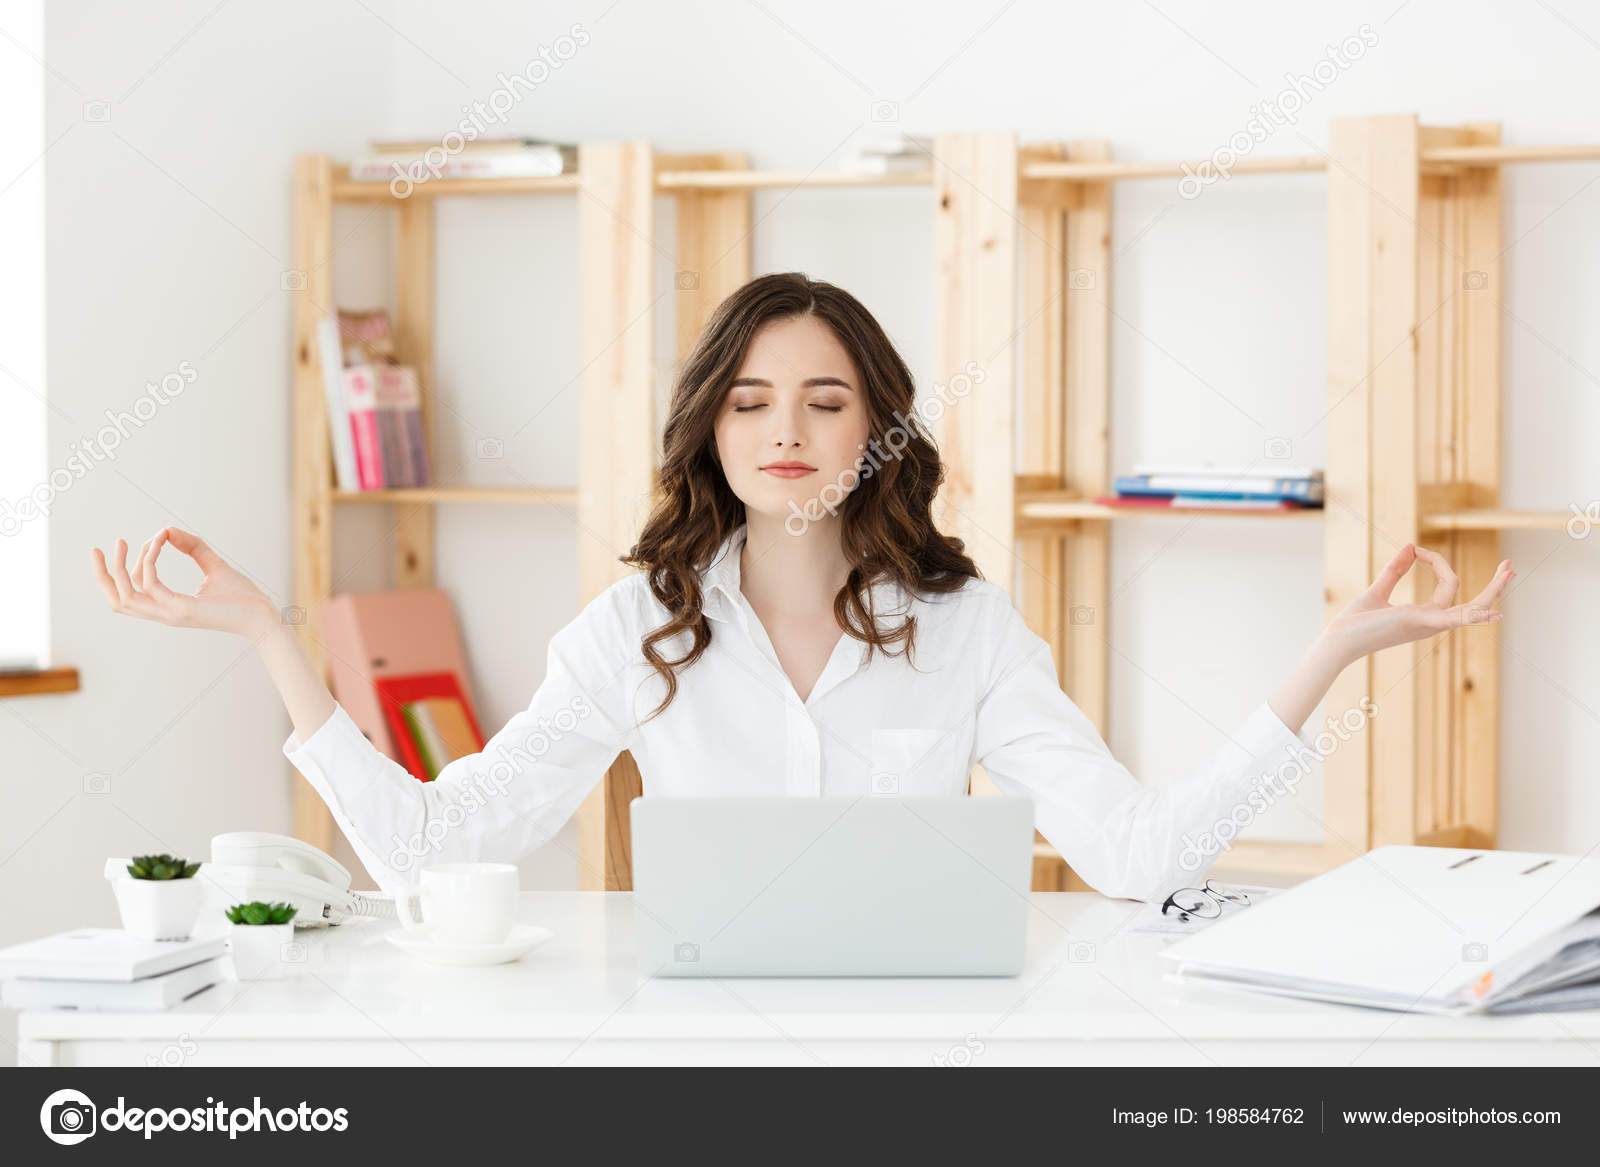 Business And Health Concept Portrait Young Woman Near The Laptop Practicing Meditation At The Office Desk